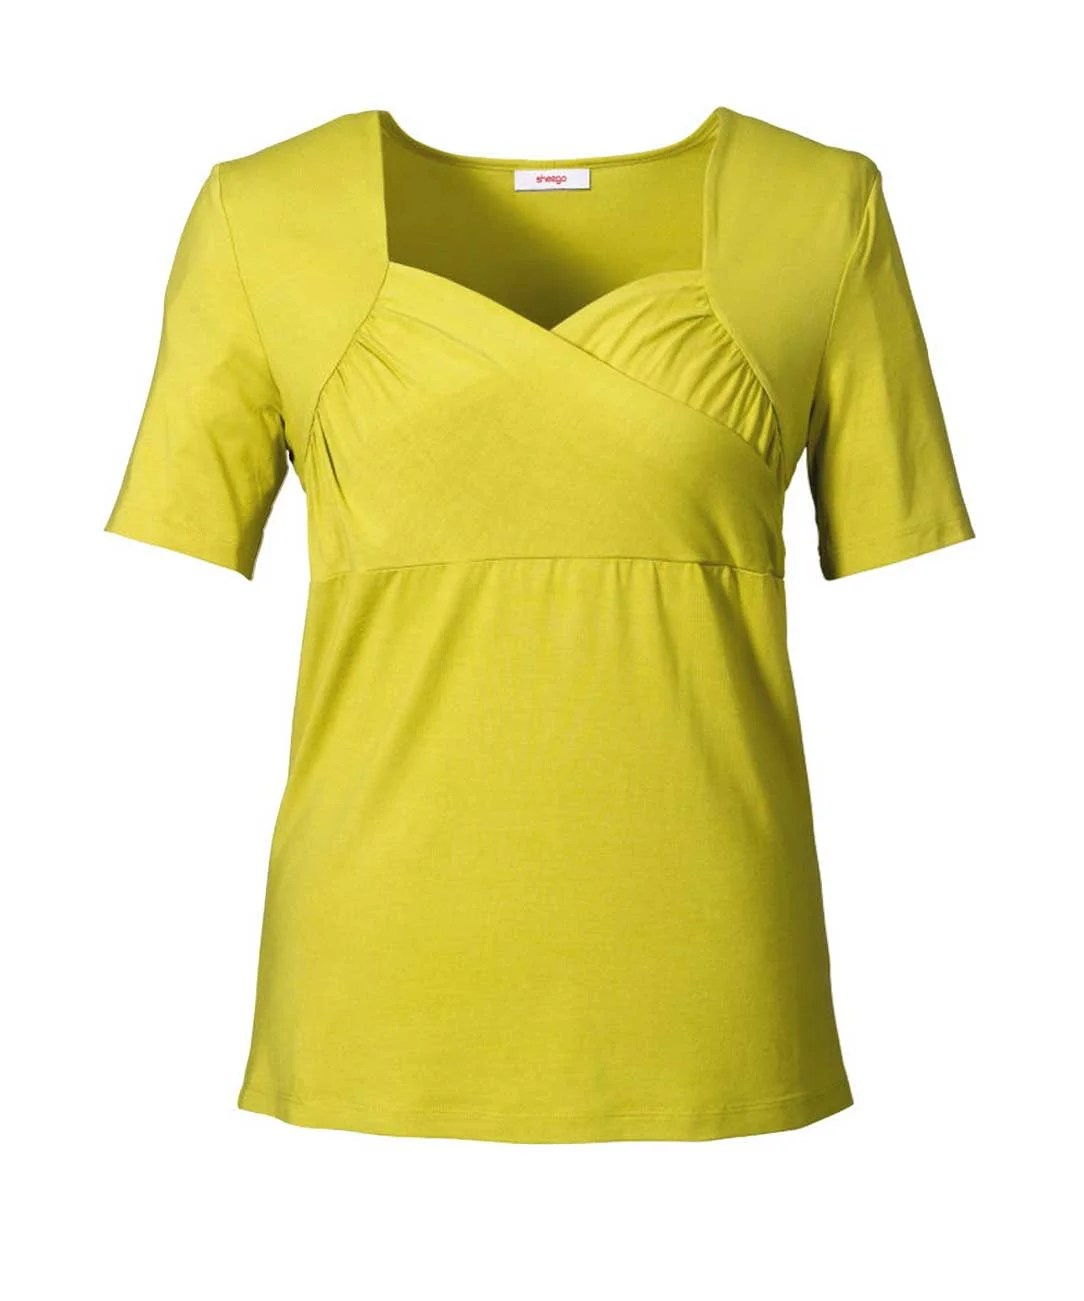 524.808 SHEEGO Damen-Shirt Kiwi